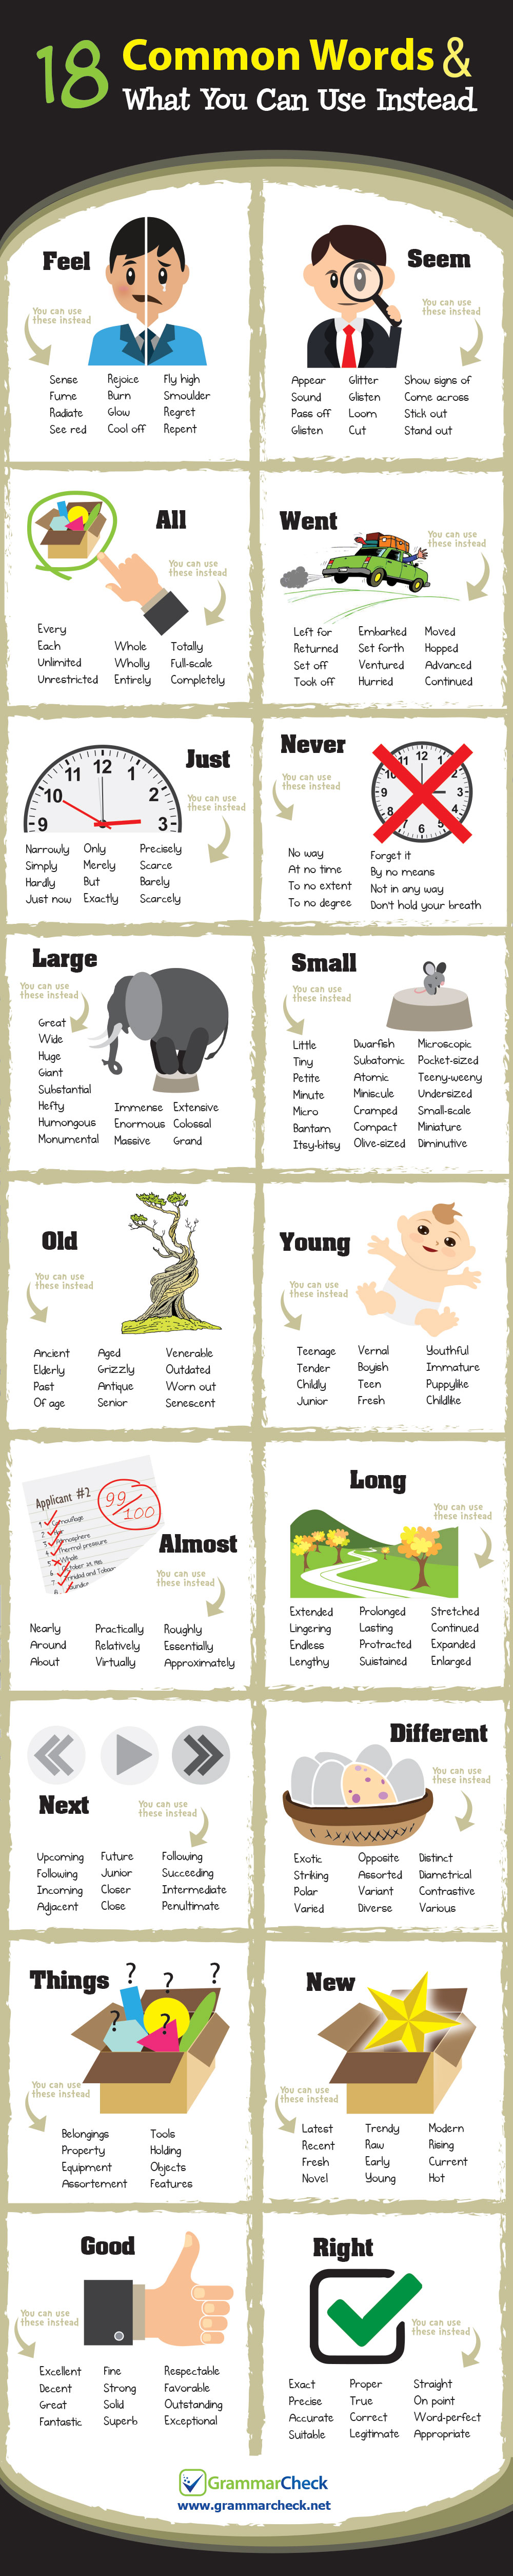 18 Common Words and What You Can Use Instead - Here are more than 700 alternative ways to express 18 common words. Spice up your writing with these fantastic alternative words!